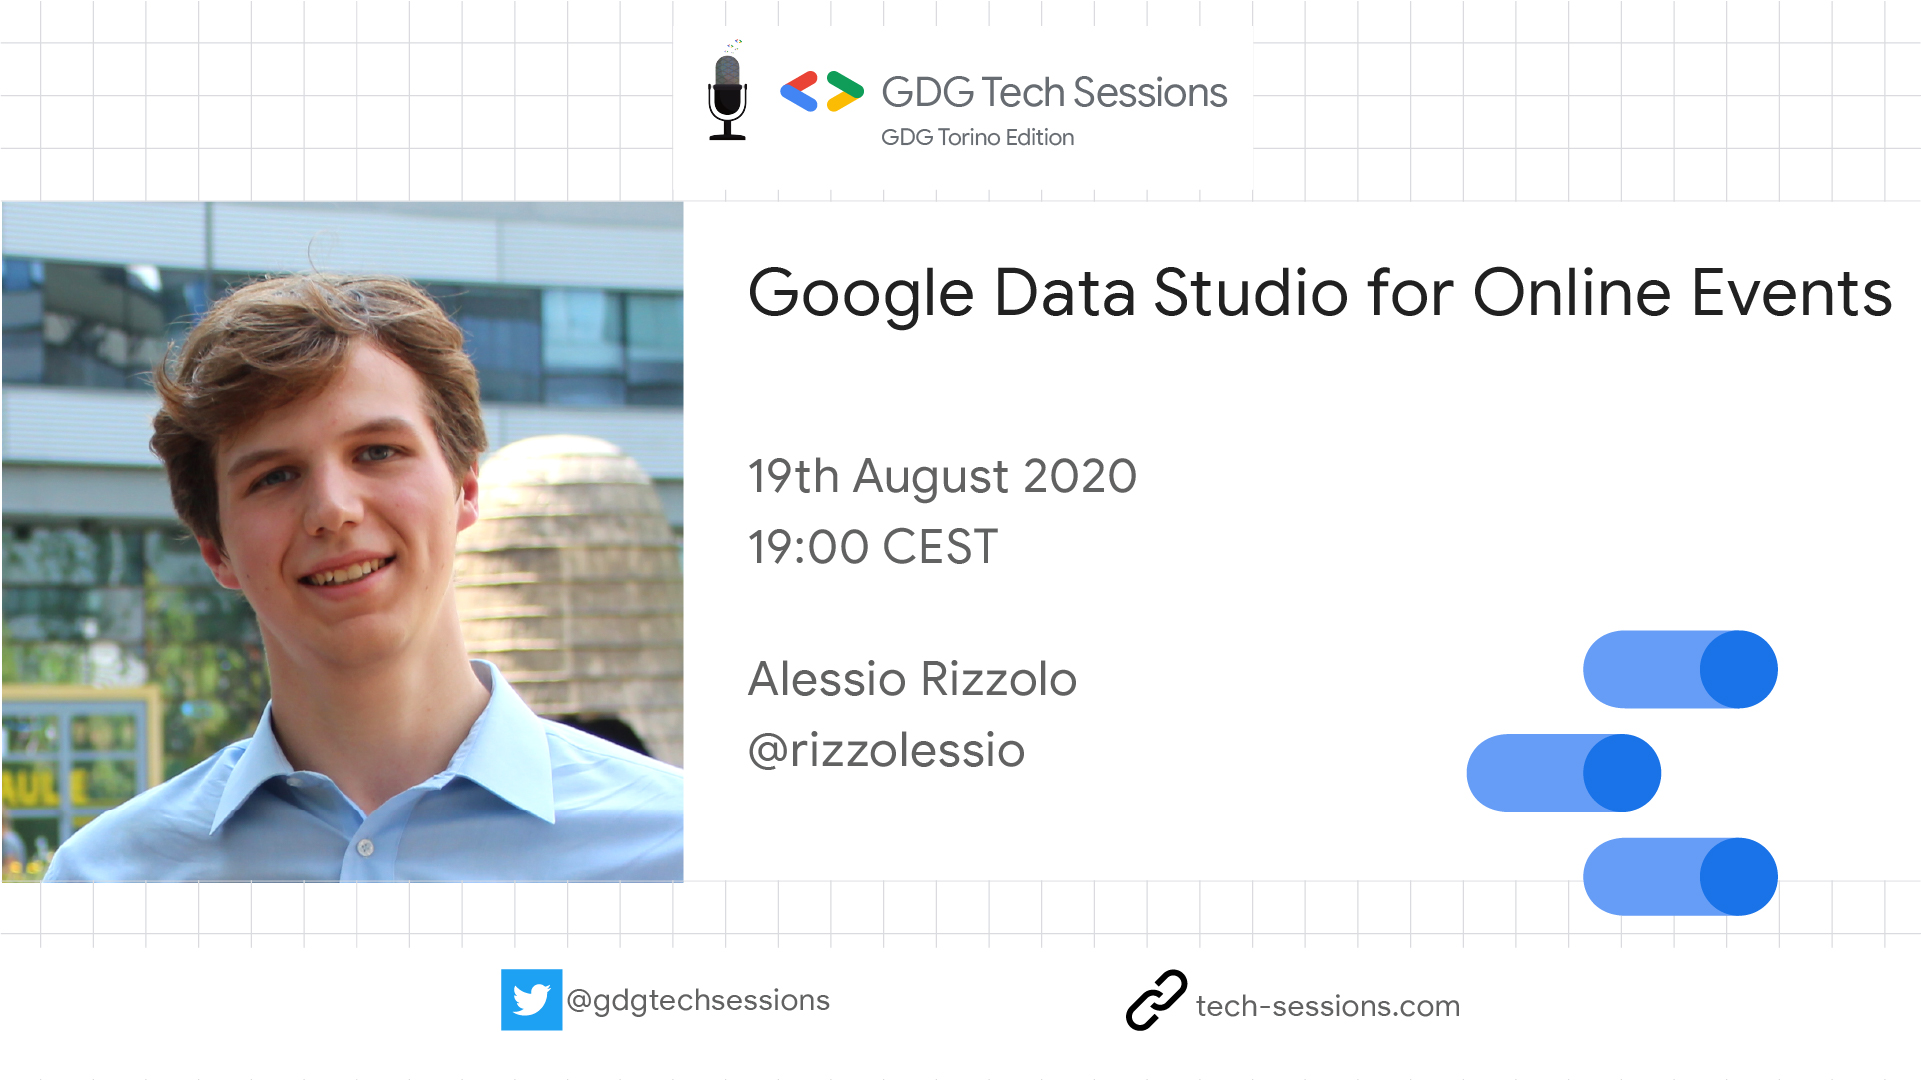 Google Data Studio for Online Events